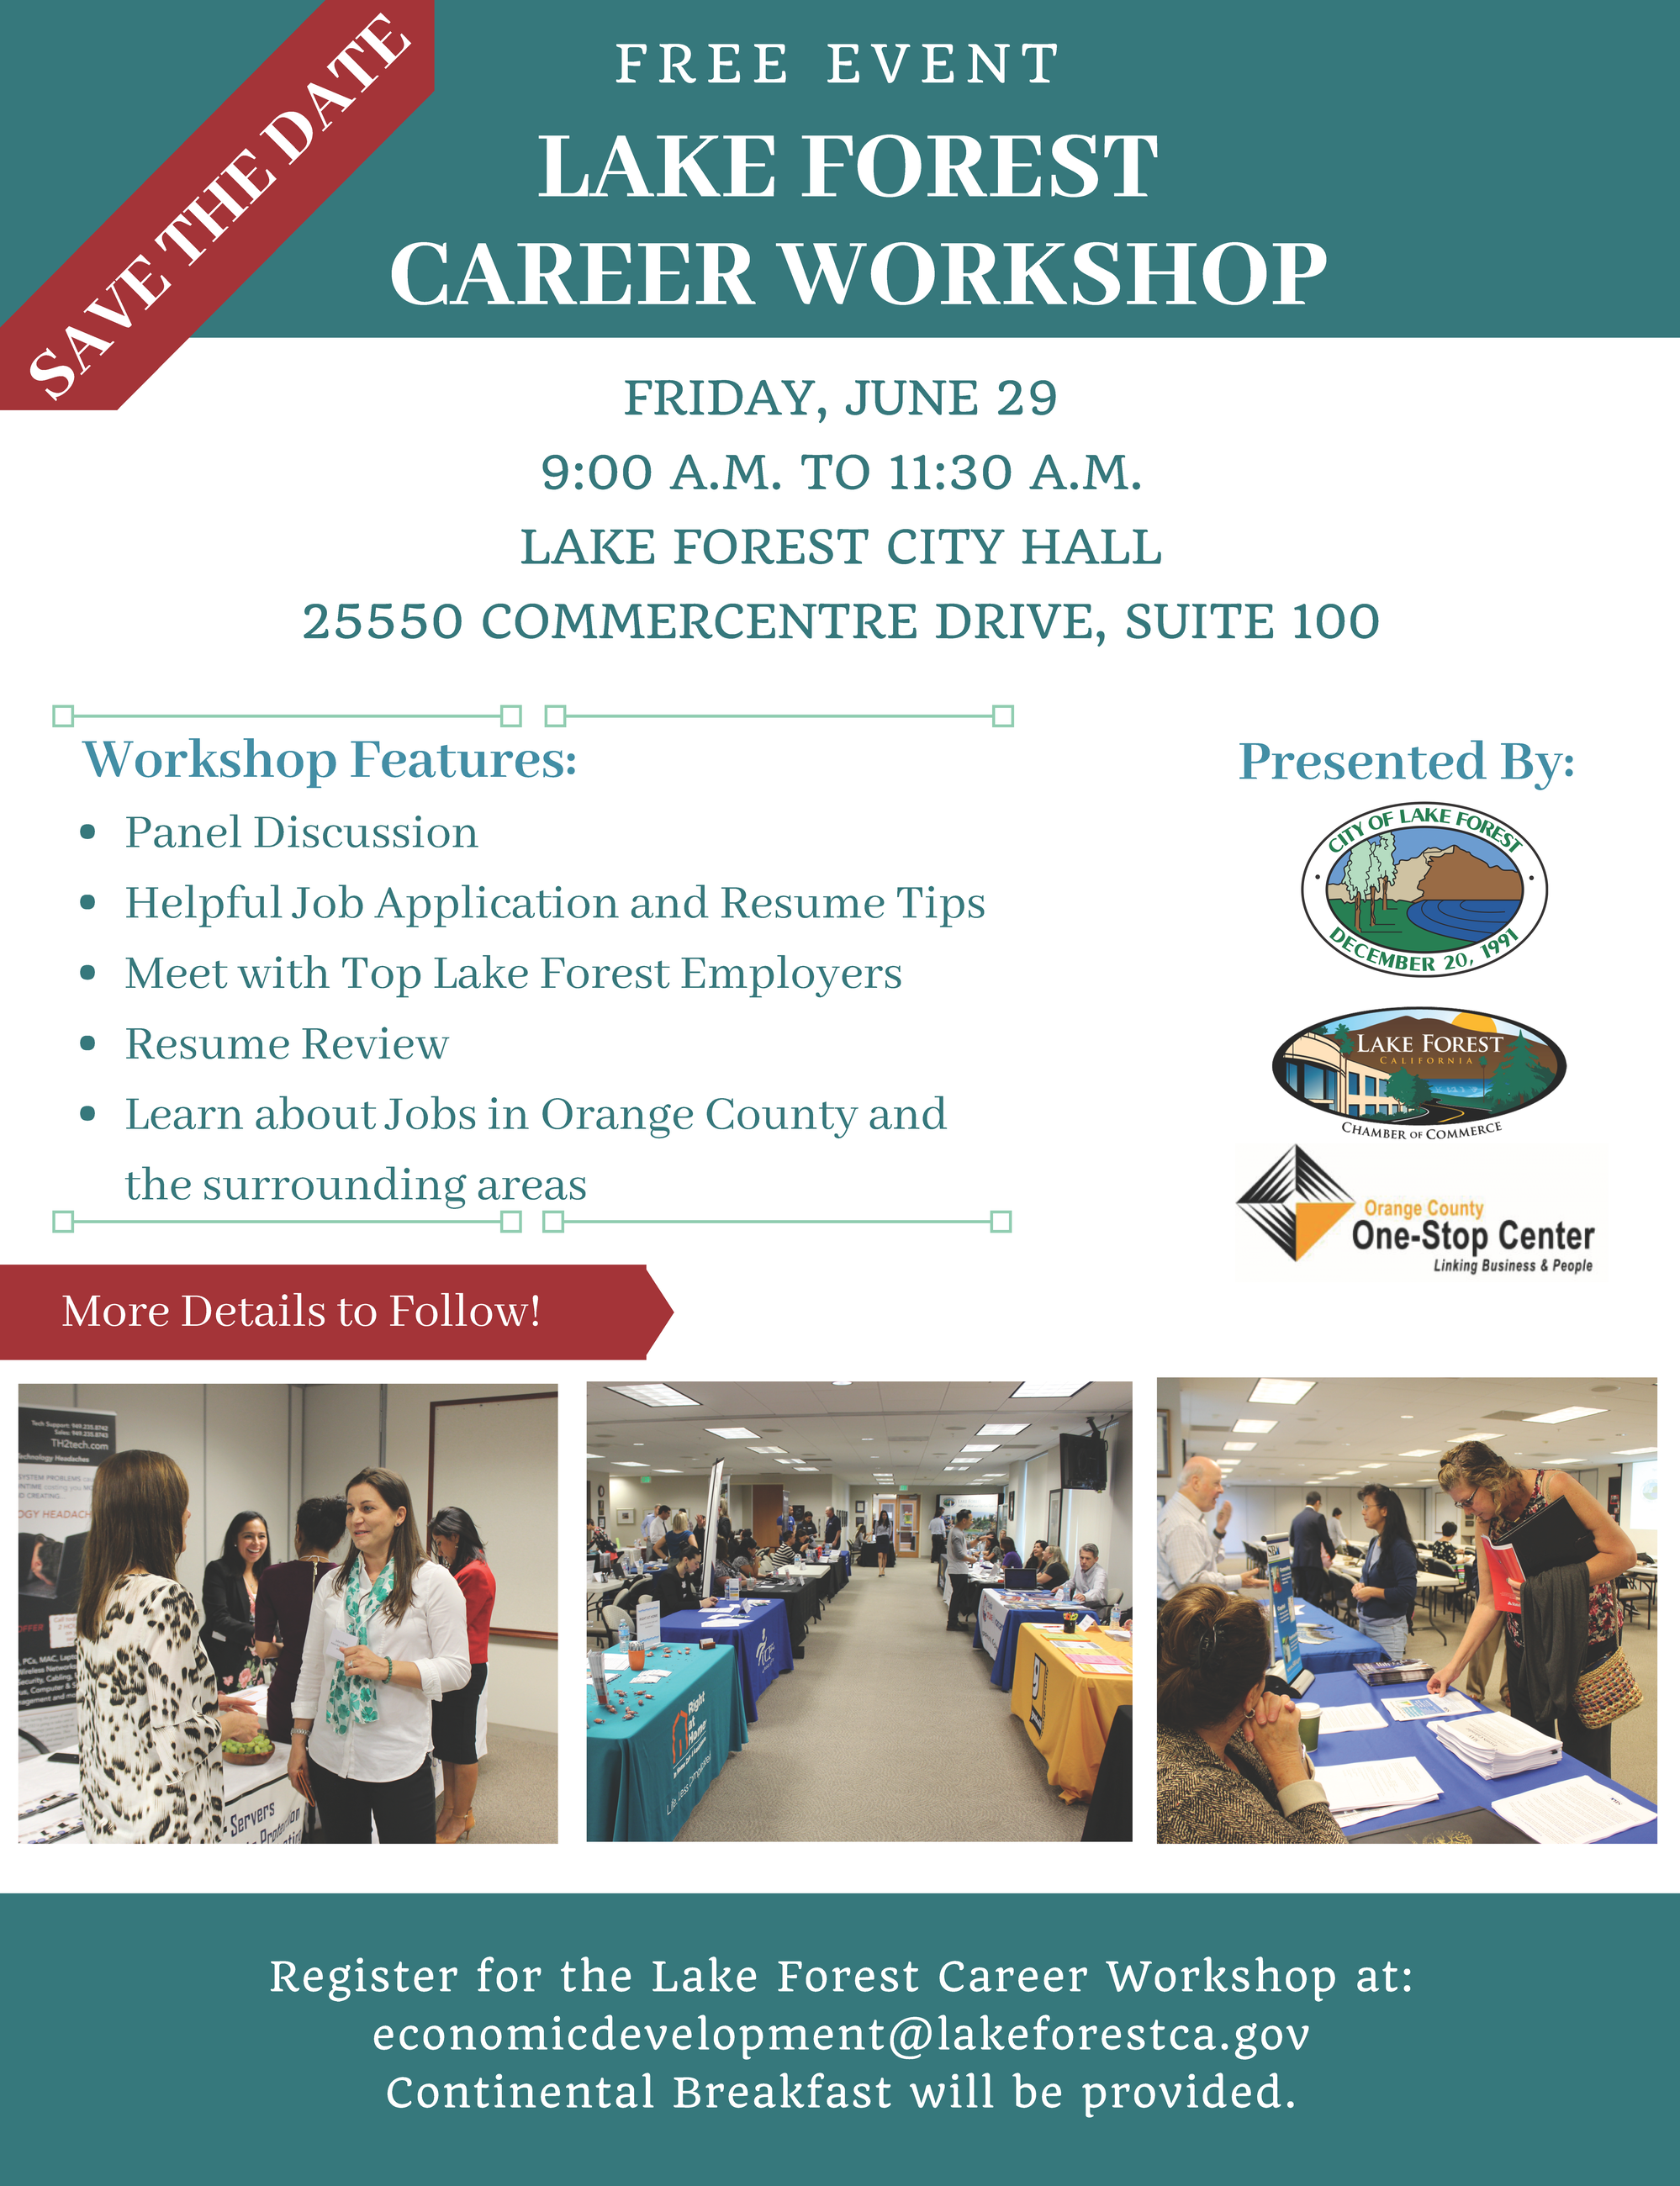 Lake Forest Career Workshop Flyer